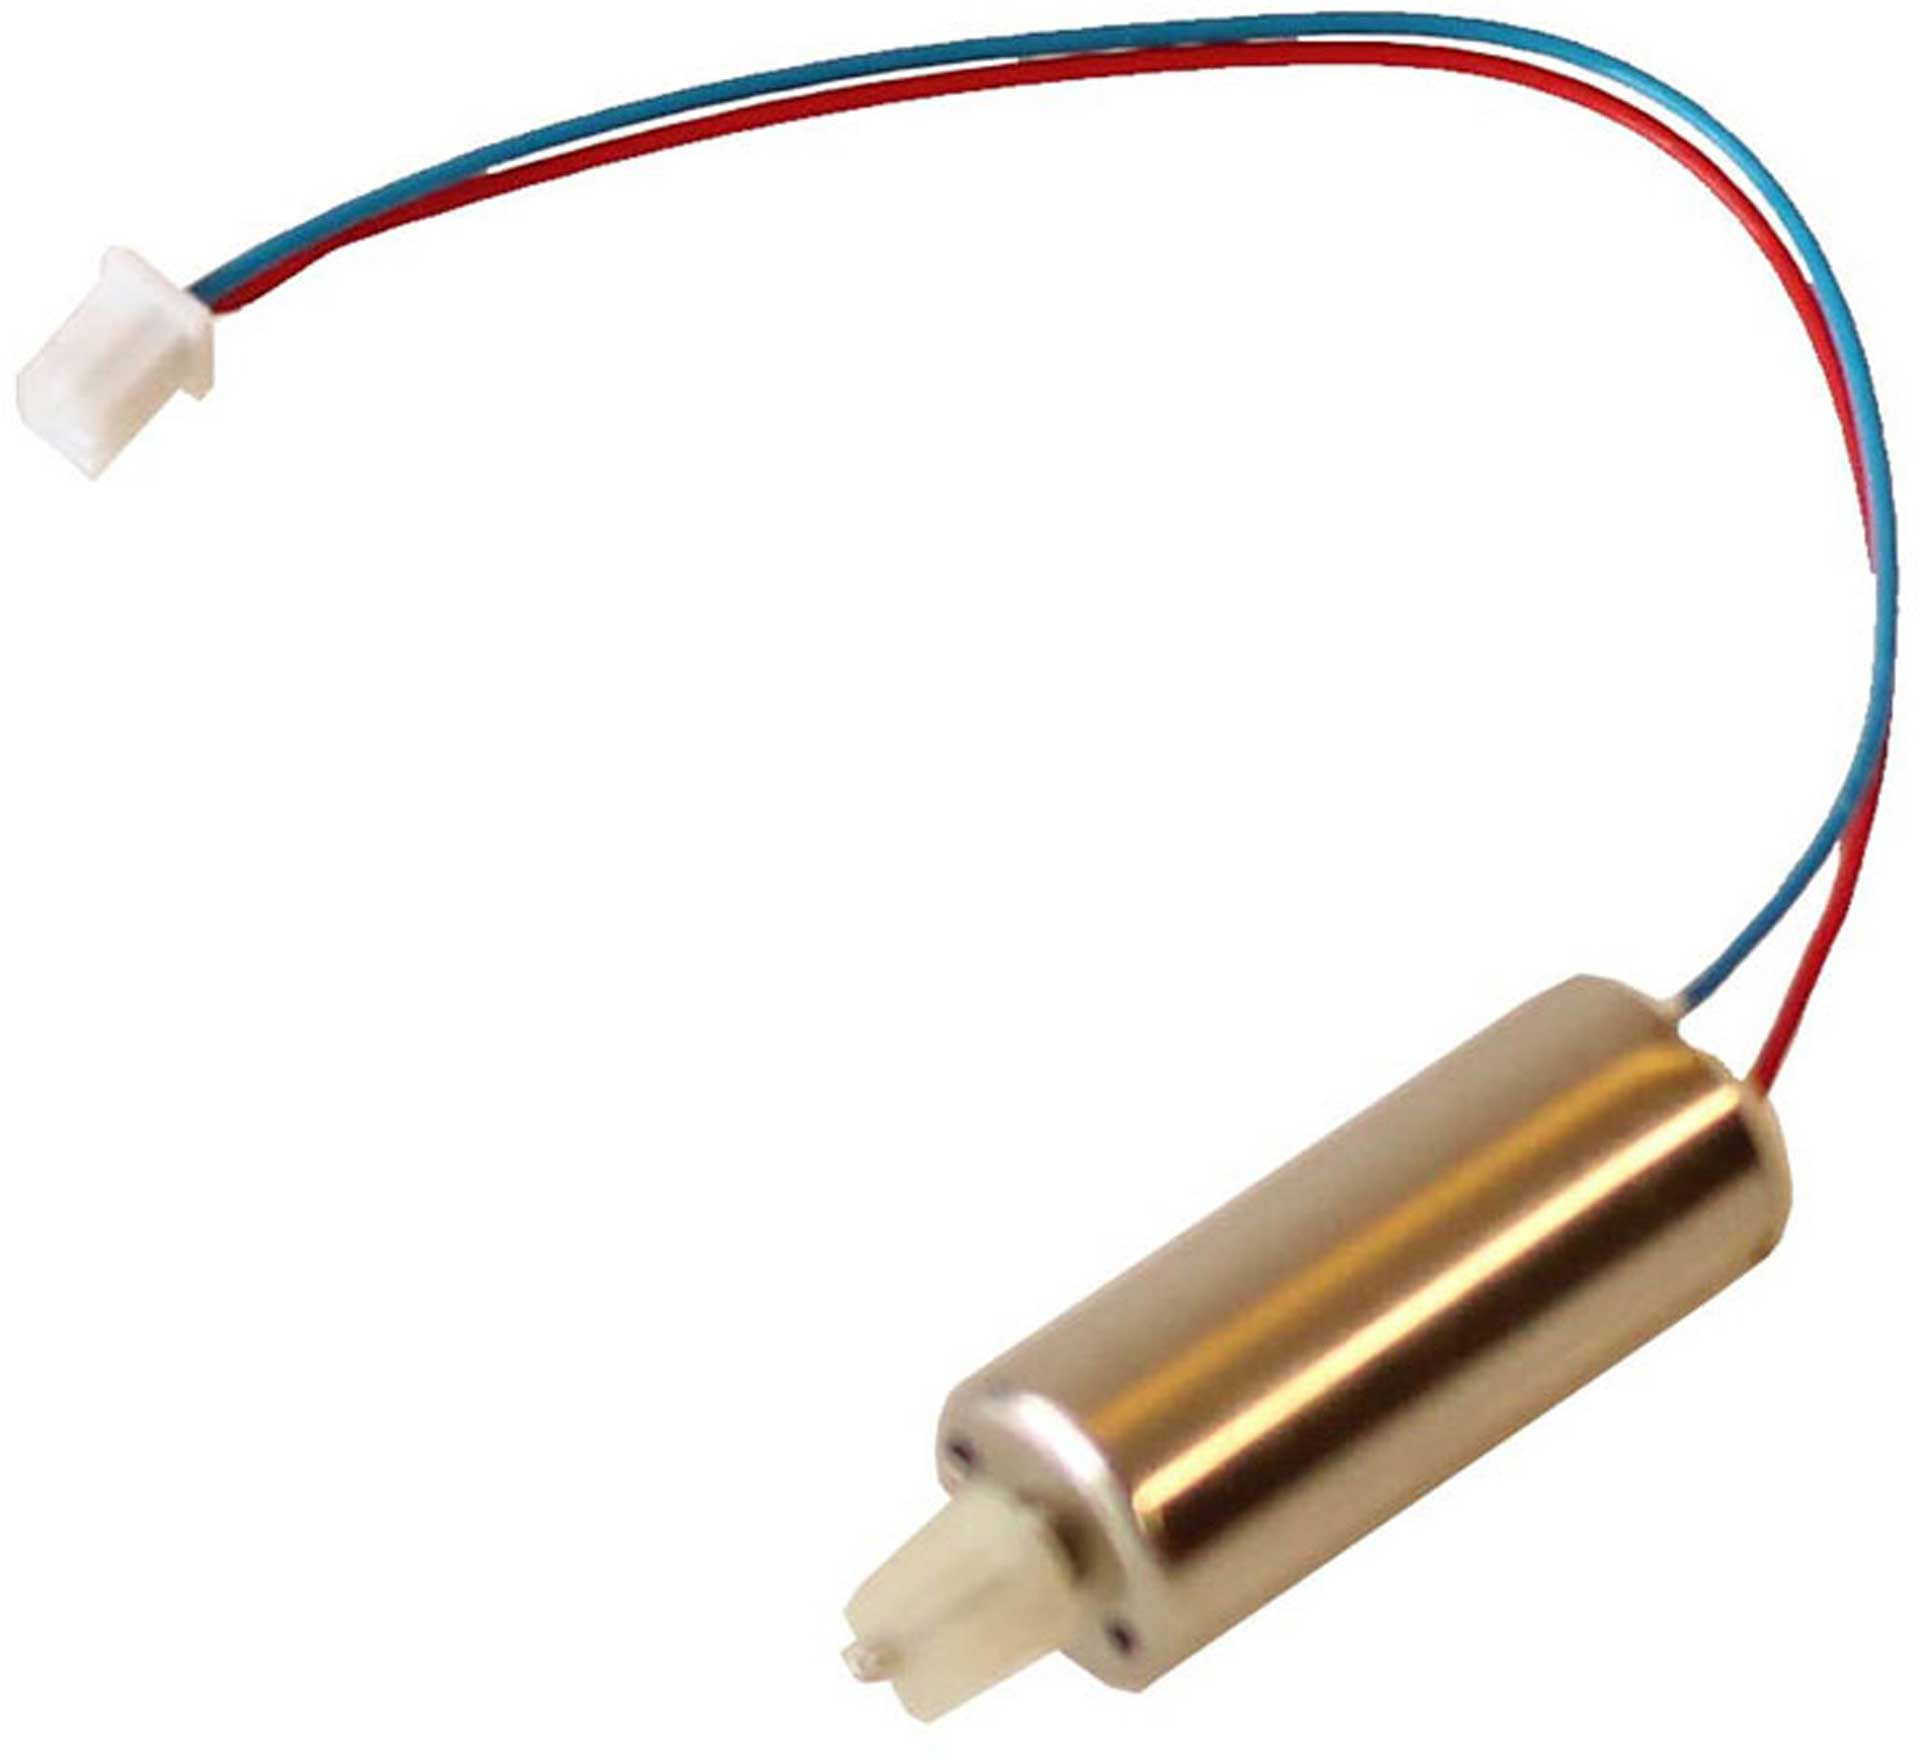 DRIVE & FLY MODELS REPLACEMENT MOTOR (CABLE BLUE/RED) SKYWATCHER FUN